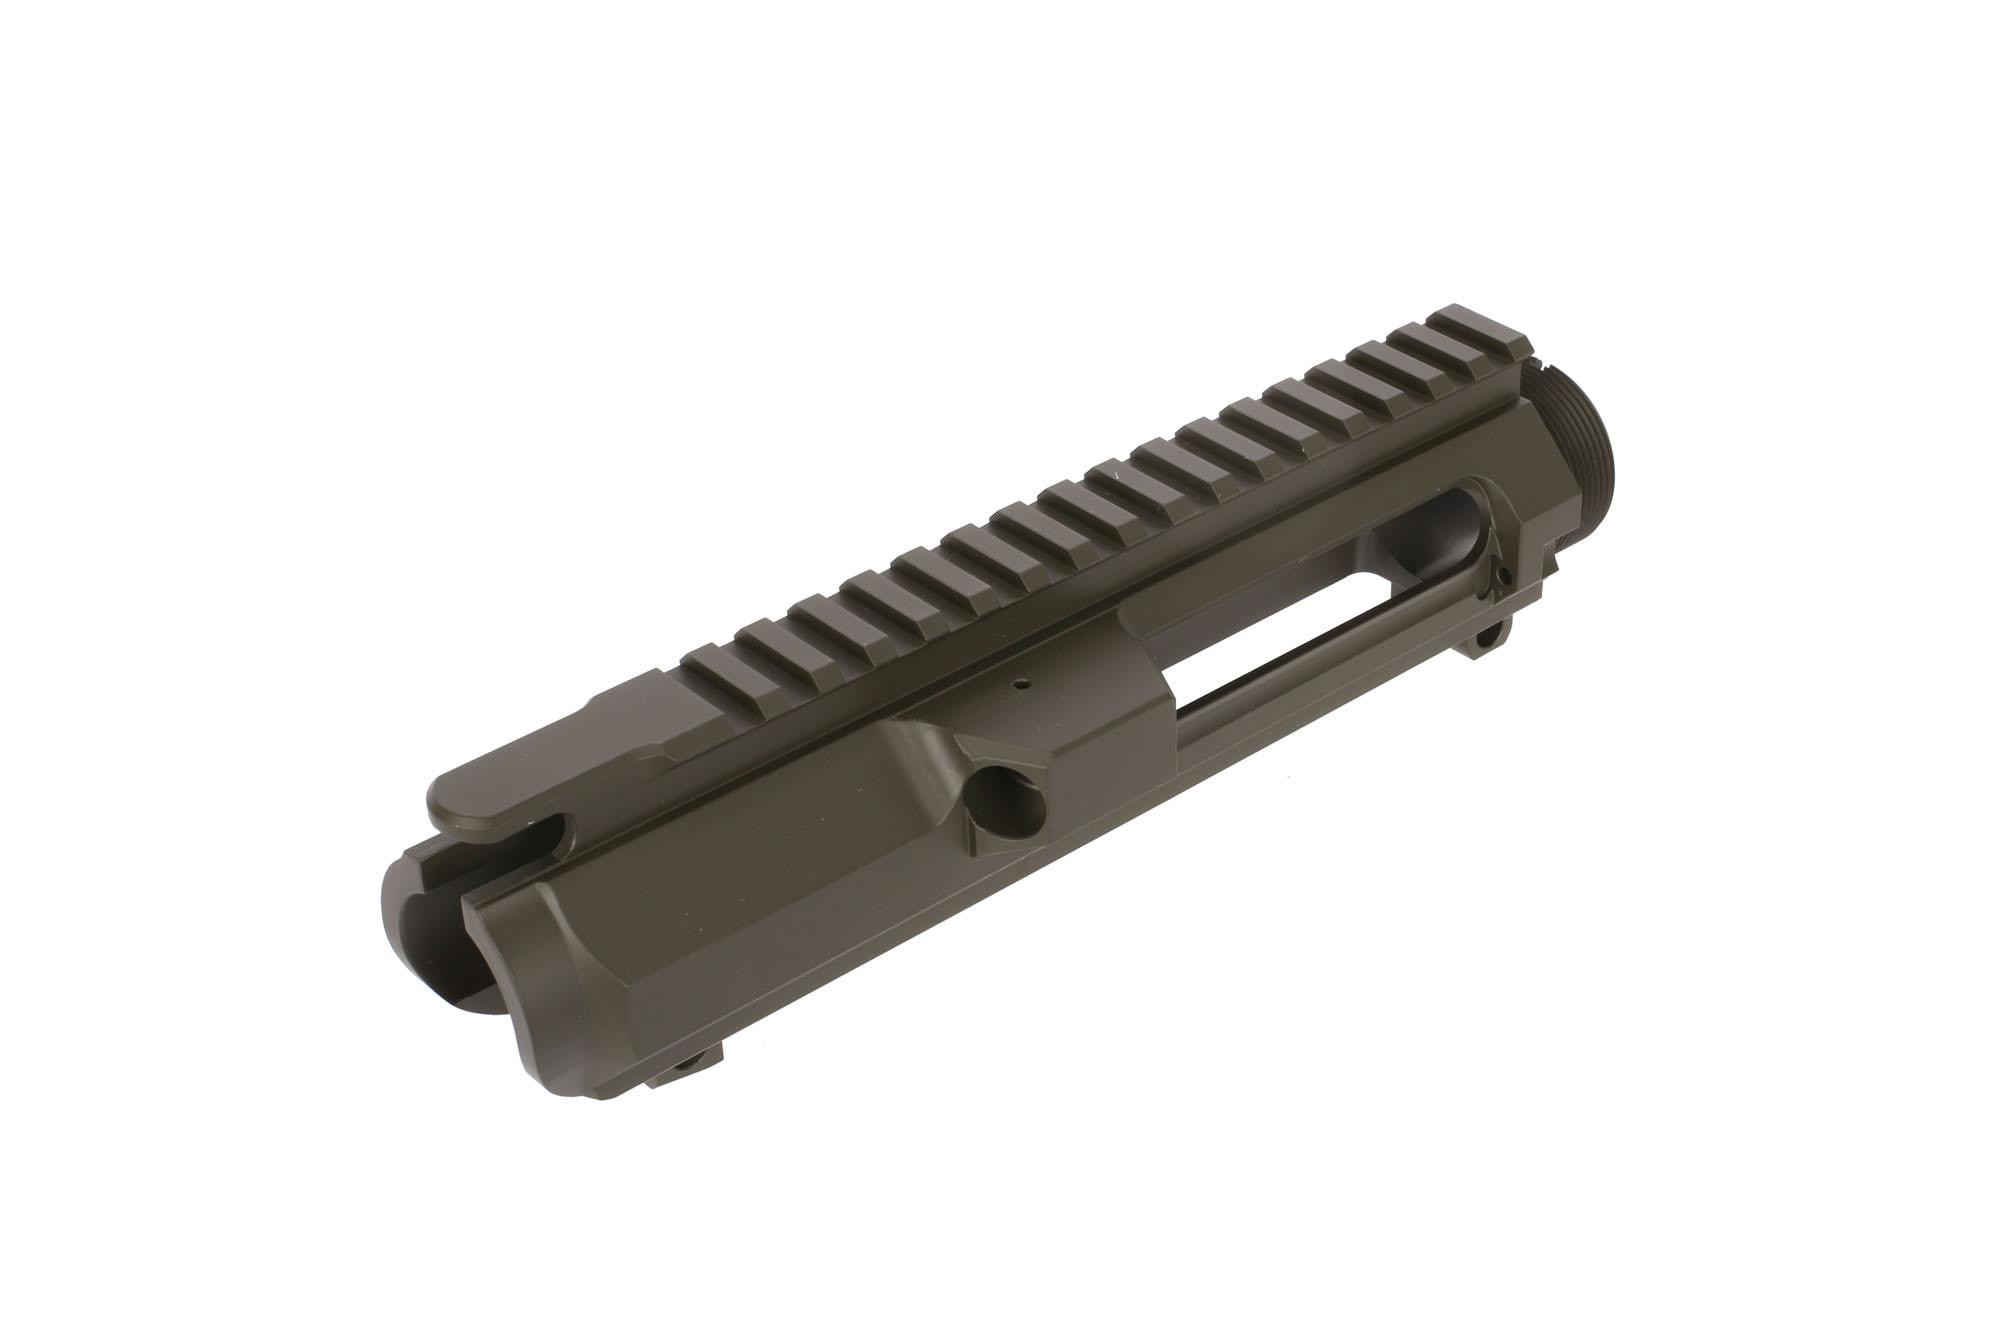 Guntec USA AR-308 Stripped Billet Upper Receiver- Olive Drab Green